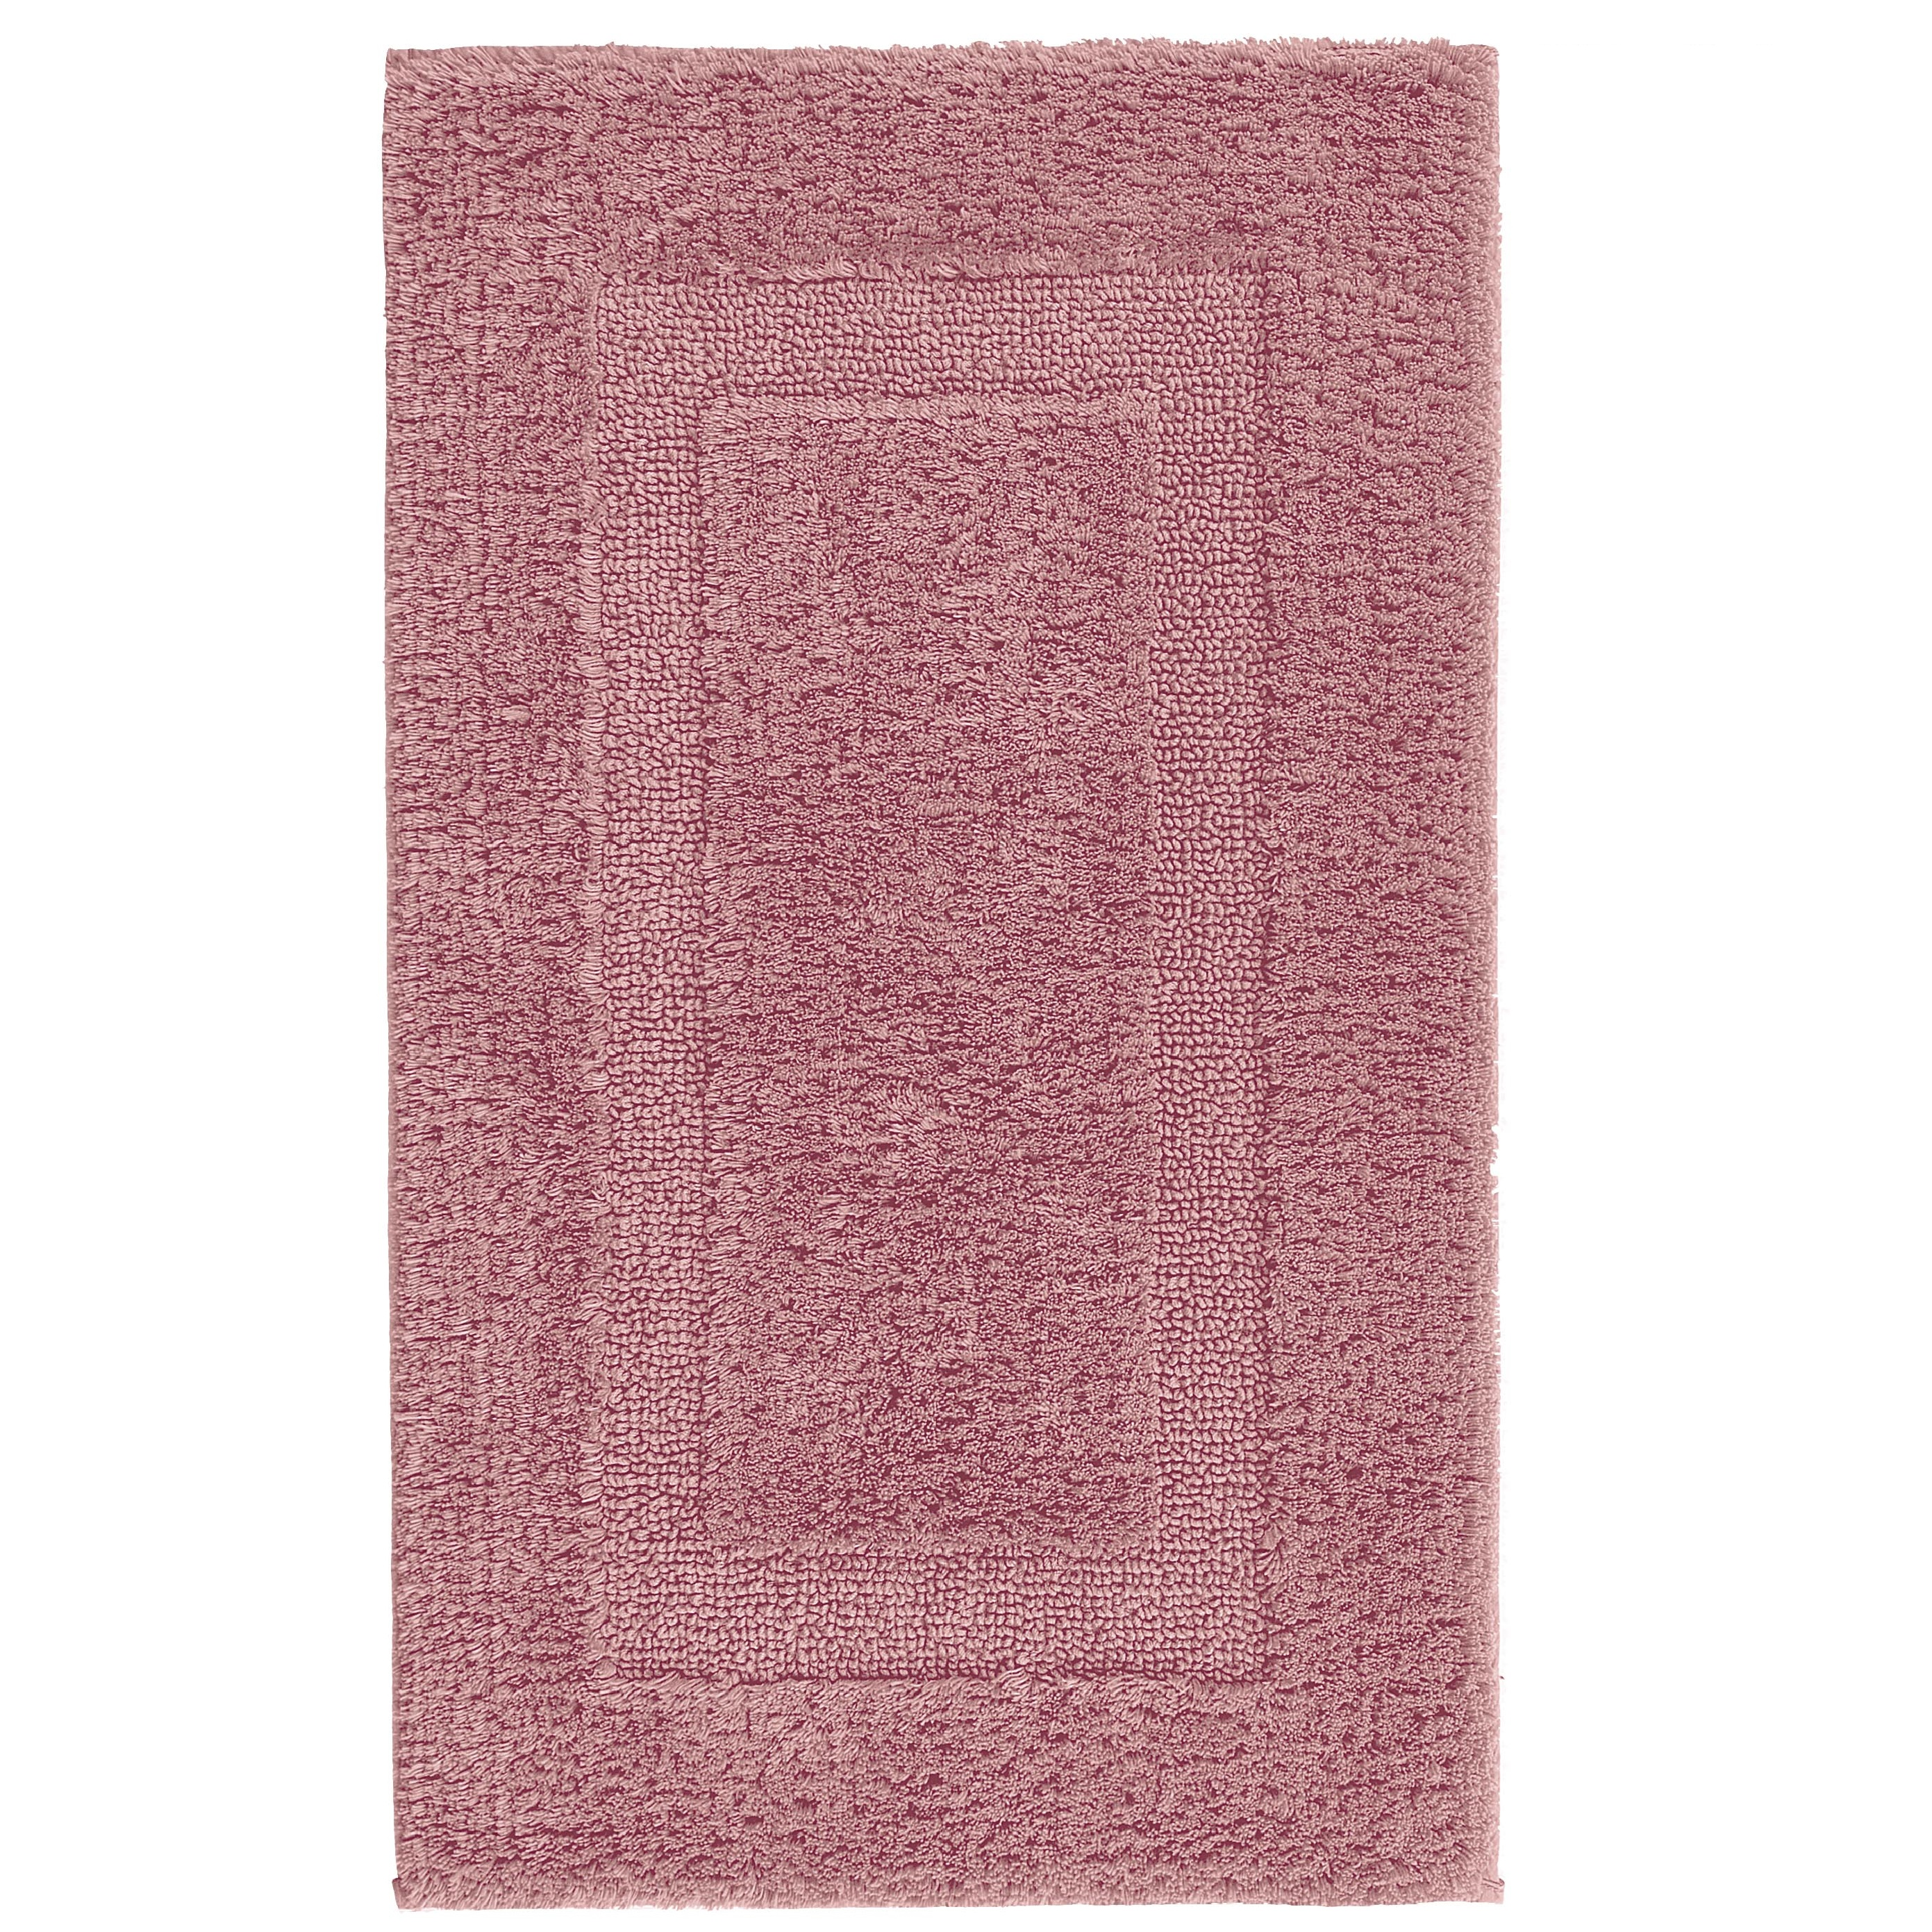 purple foam overstock mats bath shipping over windsor mat orders free on home memory bedding product shag piece